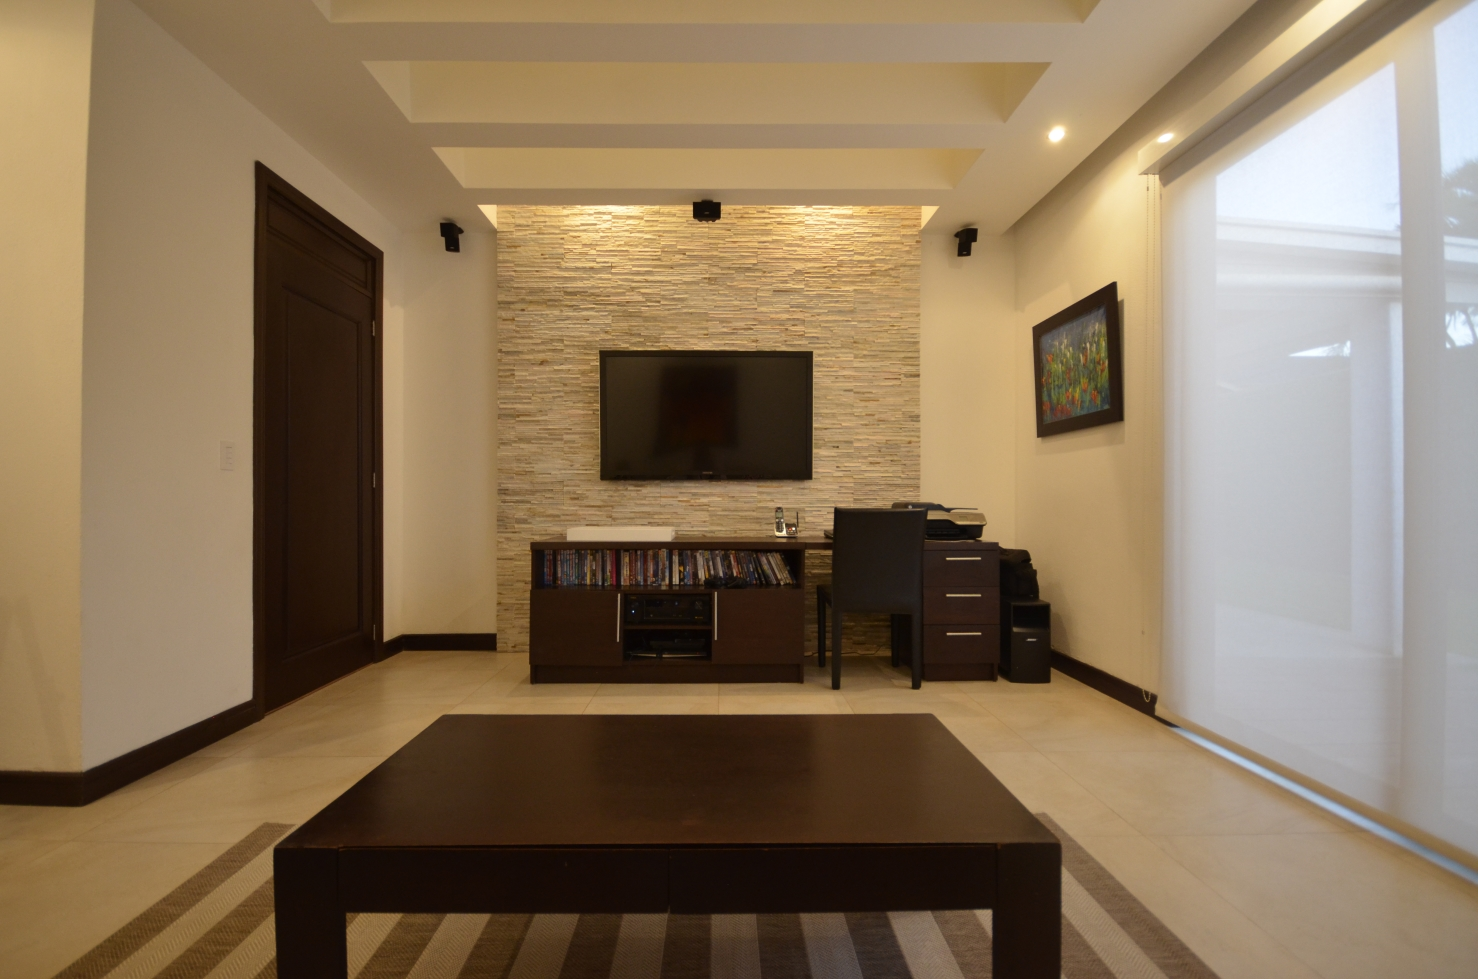 TV lounge, sitting area, architect design work, Portal 45 Residence